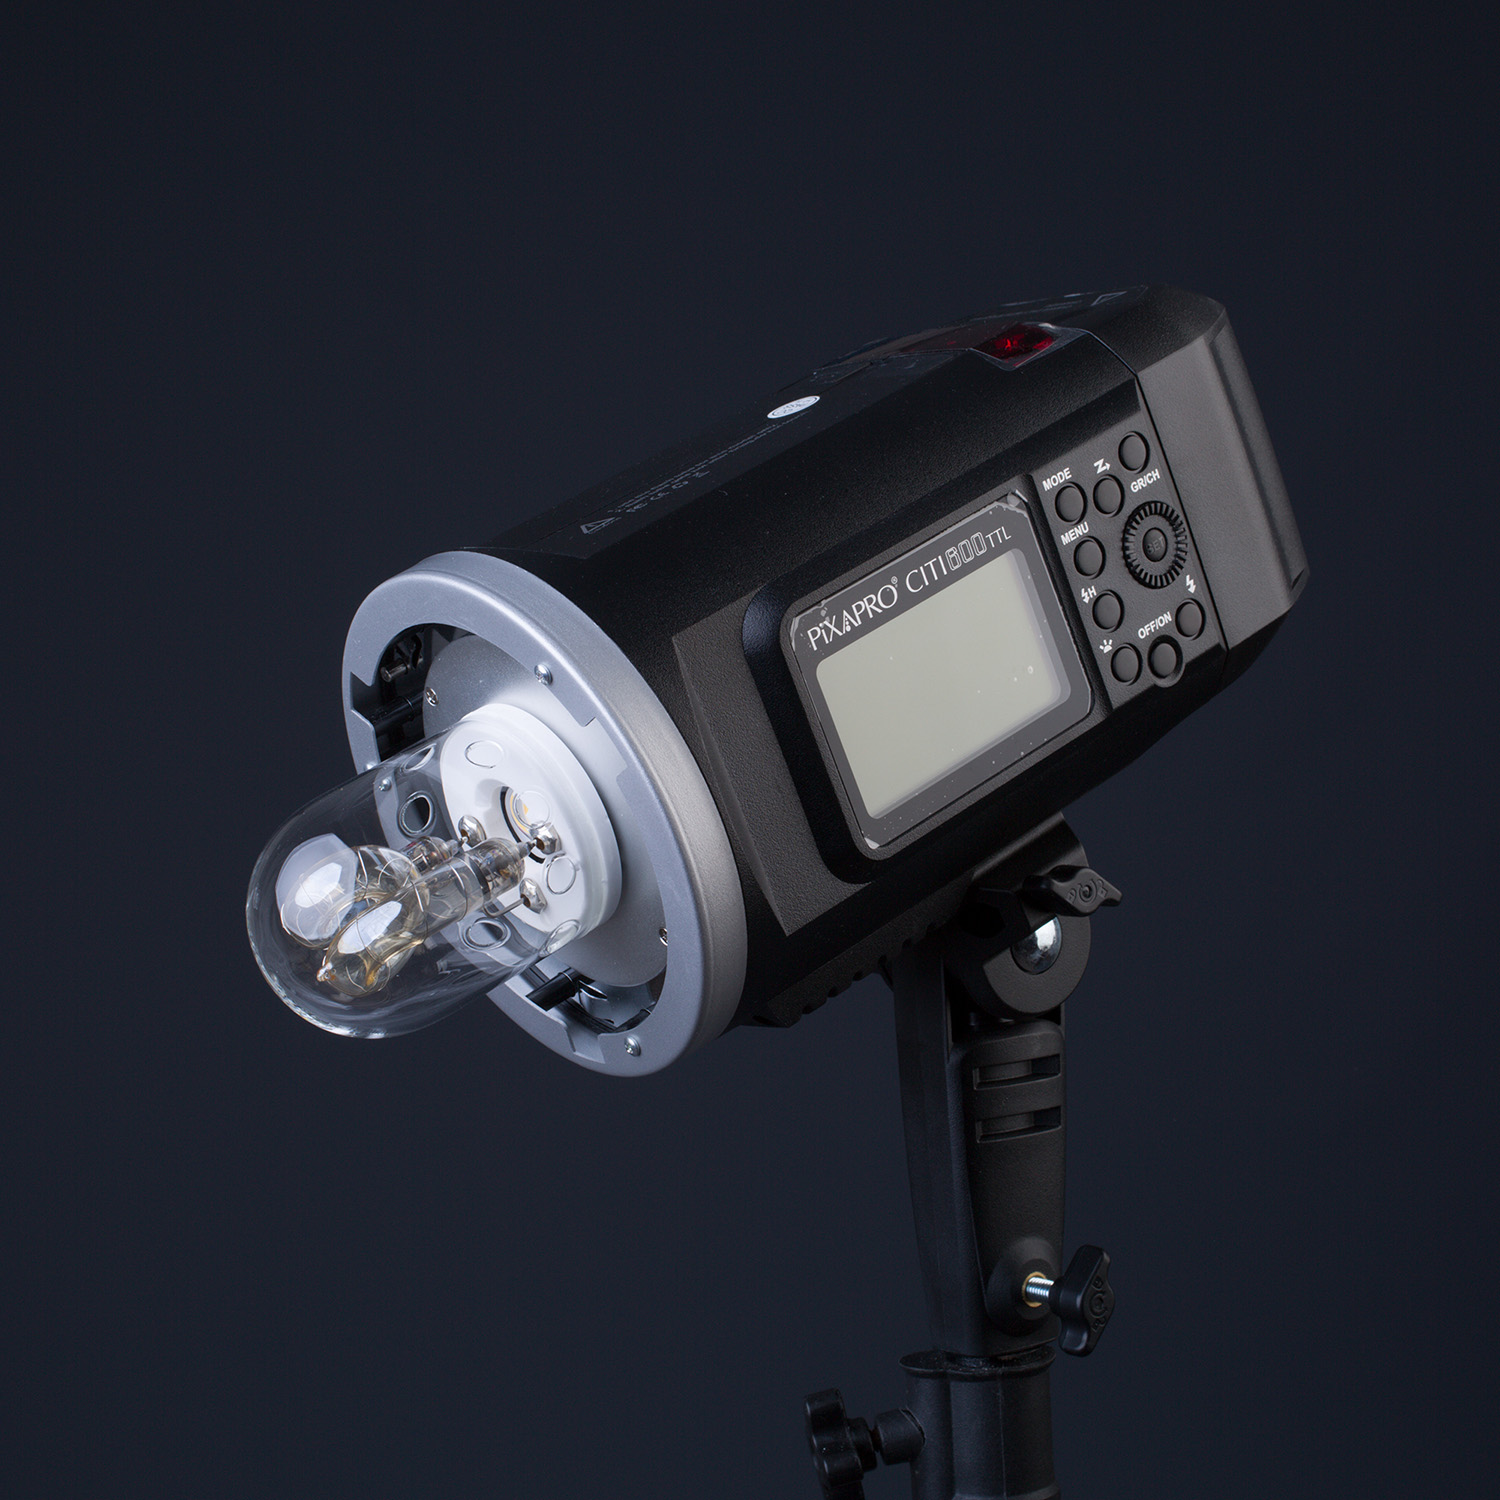 https://i2.wp.com/digital-photography-school.com/wp-content/uploads/2018/08/PixaPro-citi600-wistro-ad600bm-review-strobe-.jpg?resize=1500%2C1500&ssl=1